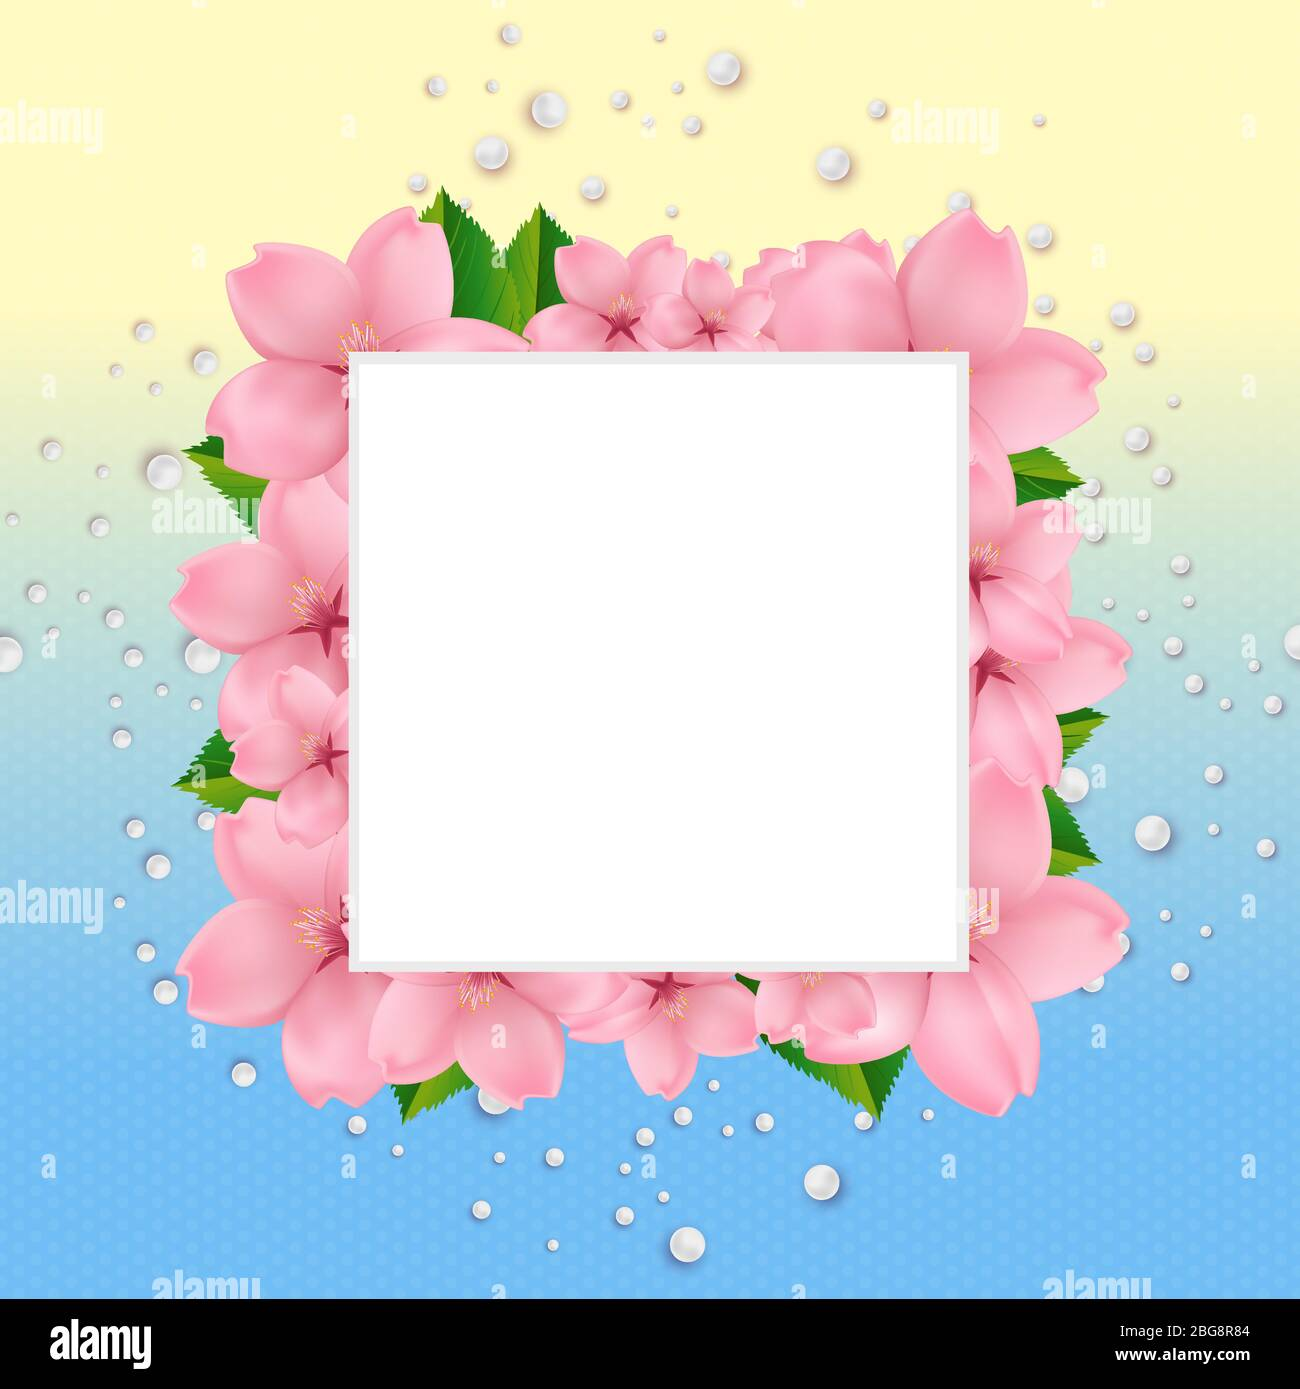 https www alamy com template for greeting wedding invitation card with refined composition of cherry blossom green leaves and white pearls on fresh bright yellow and blue background realistic cherry blossom design image354235732 html